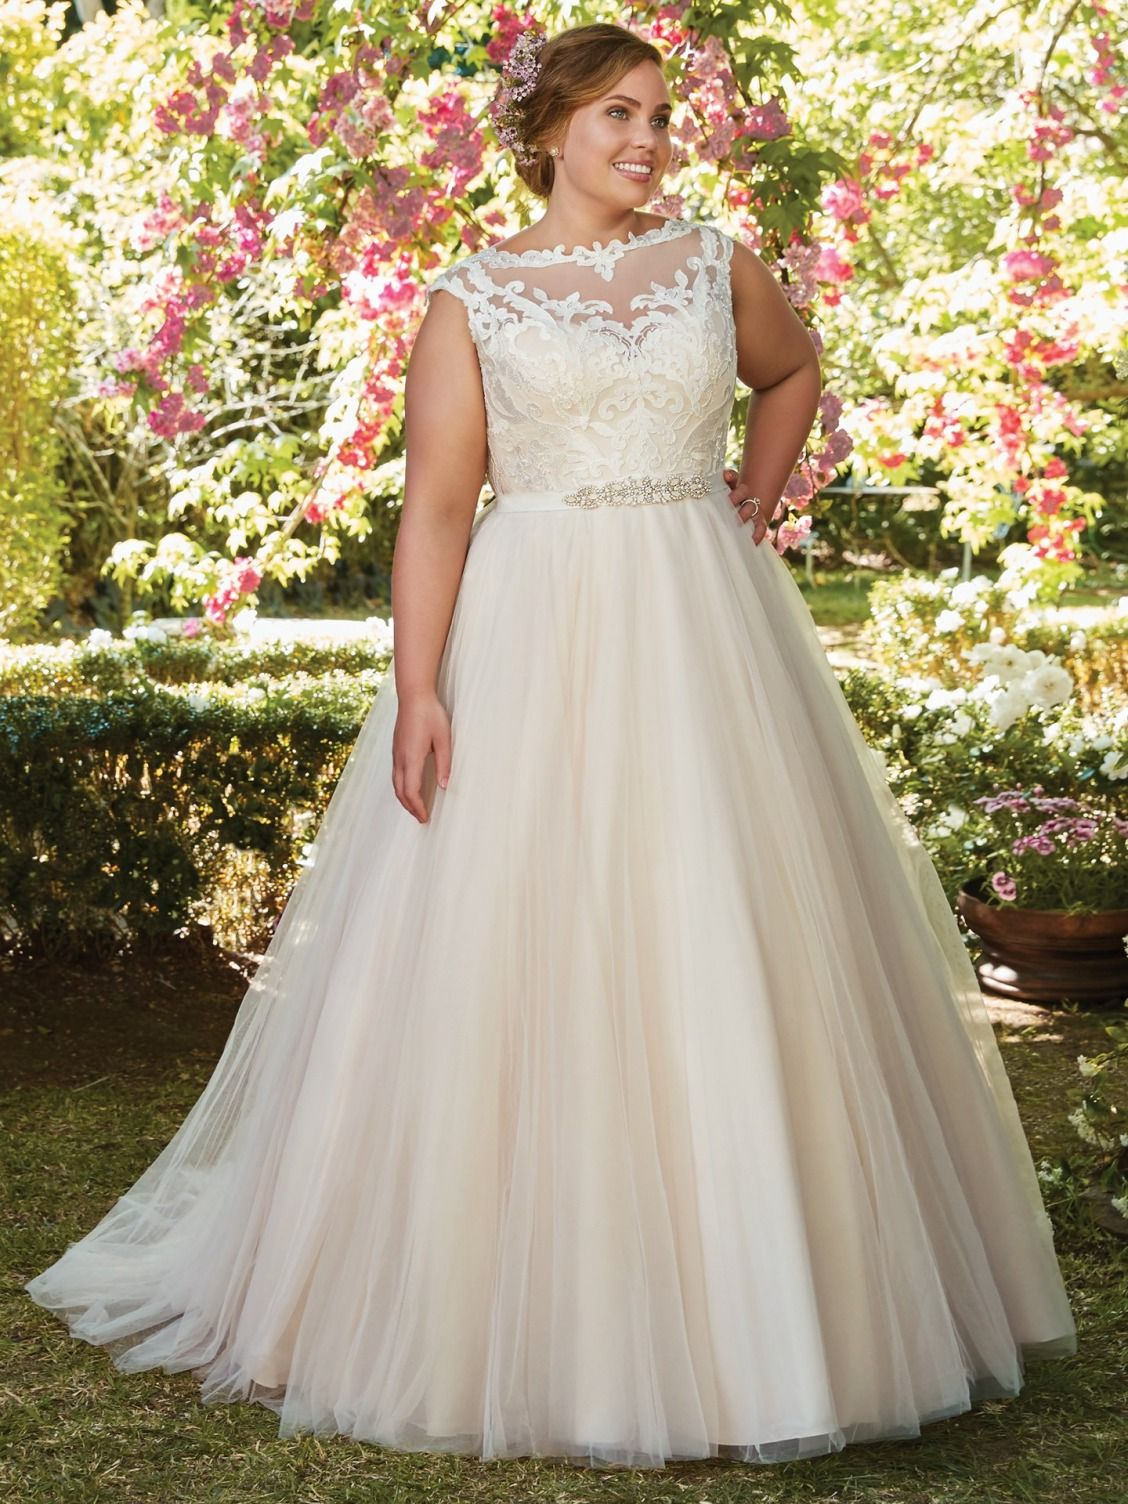 Carrie By Rebecca Ingram Wedding Dresses And Accessories Plus Size Wedding Gowns Best Wedding Dresses Bridal Gowns [ 1504 x 1128 Pixel ]